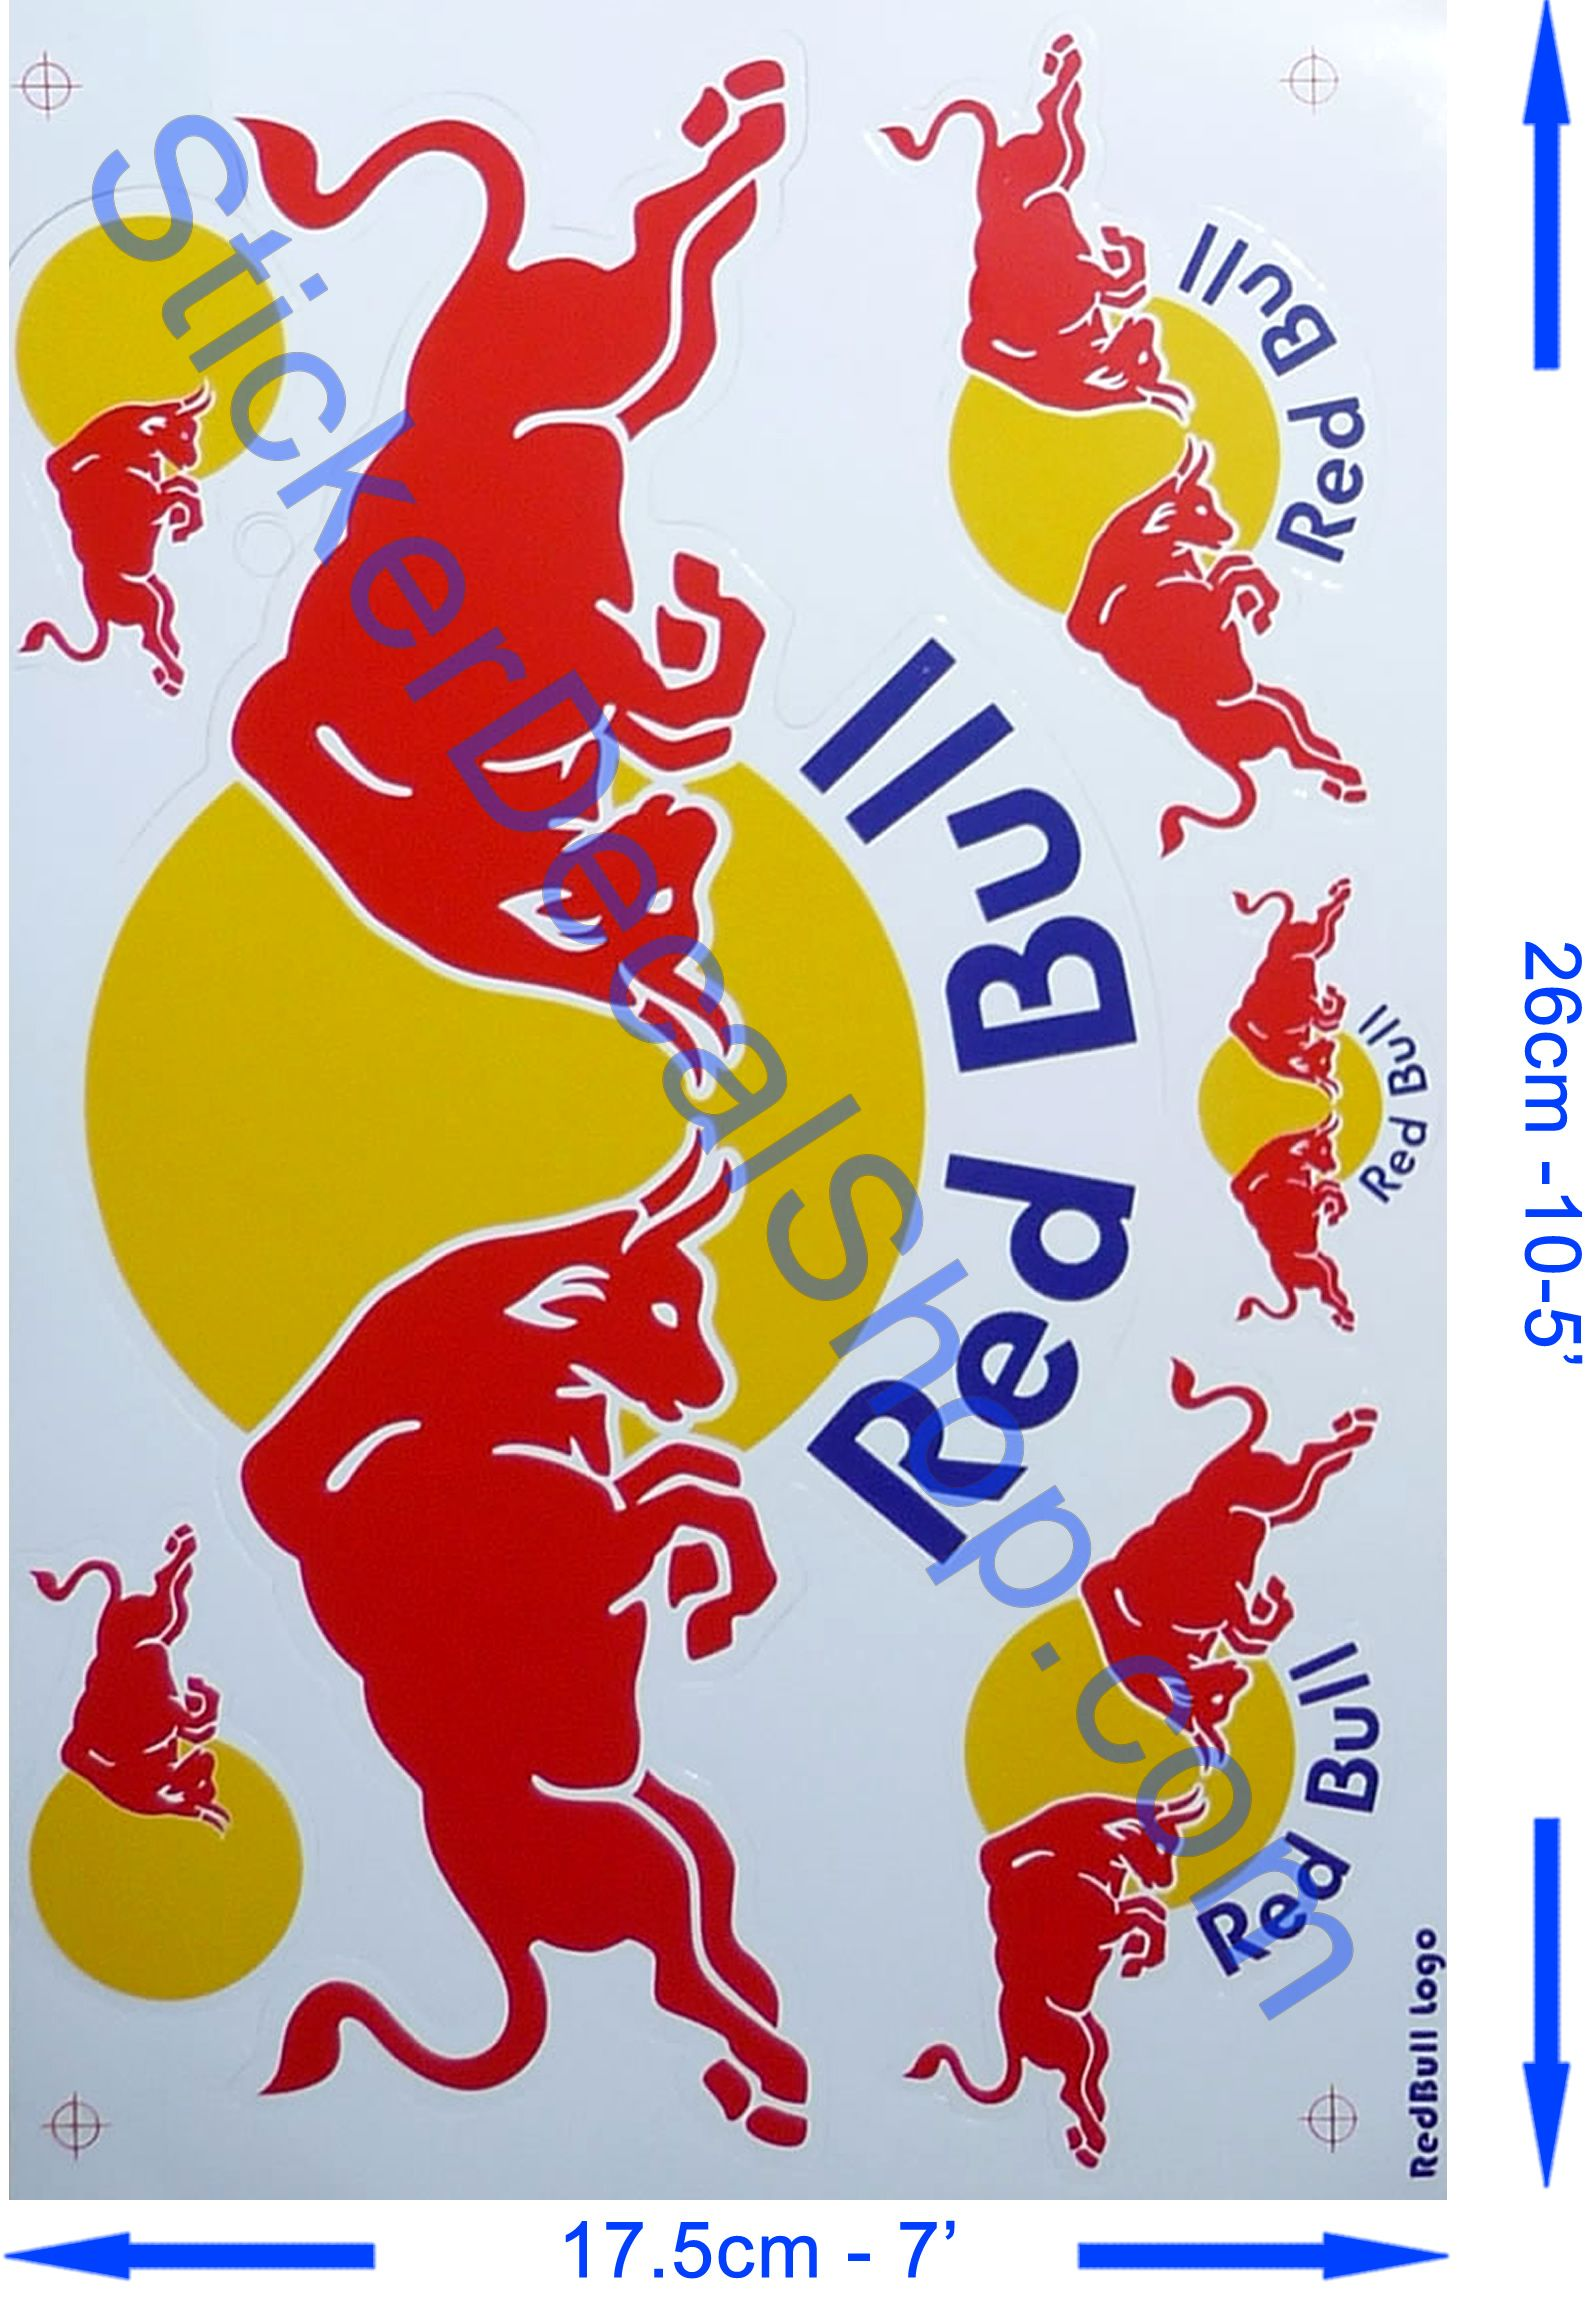 Red bull f1 sticker